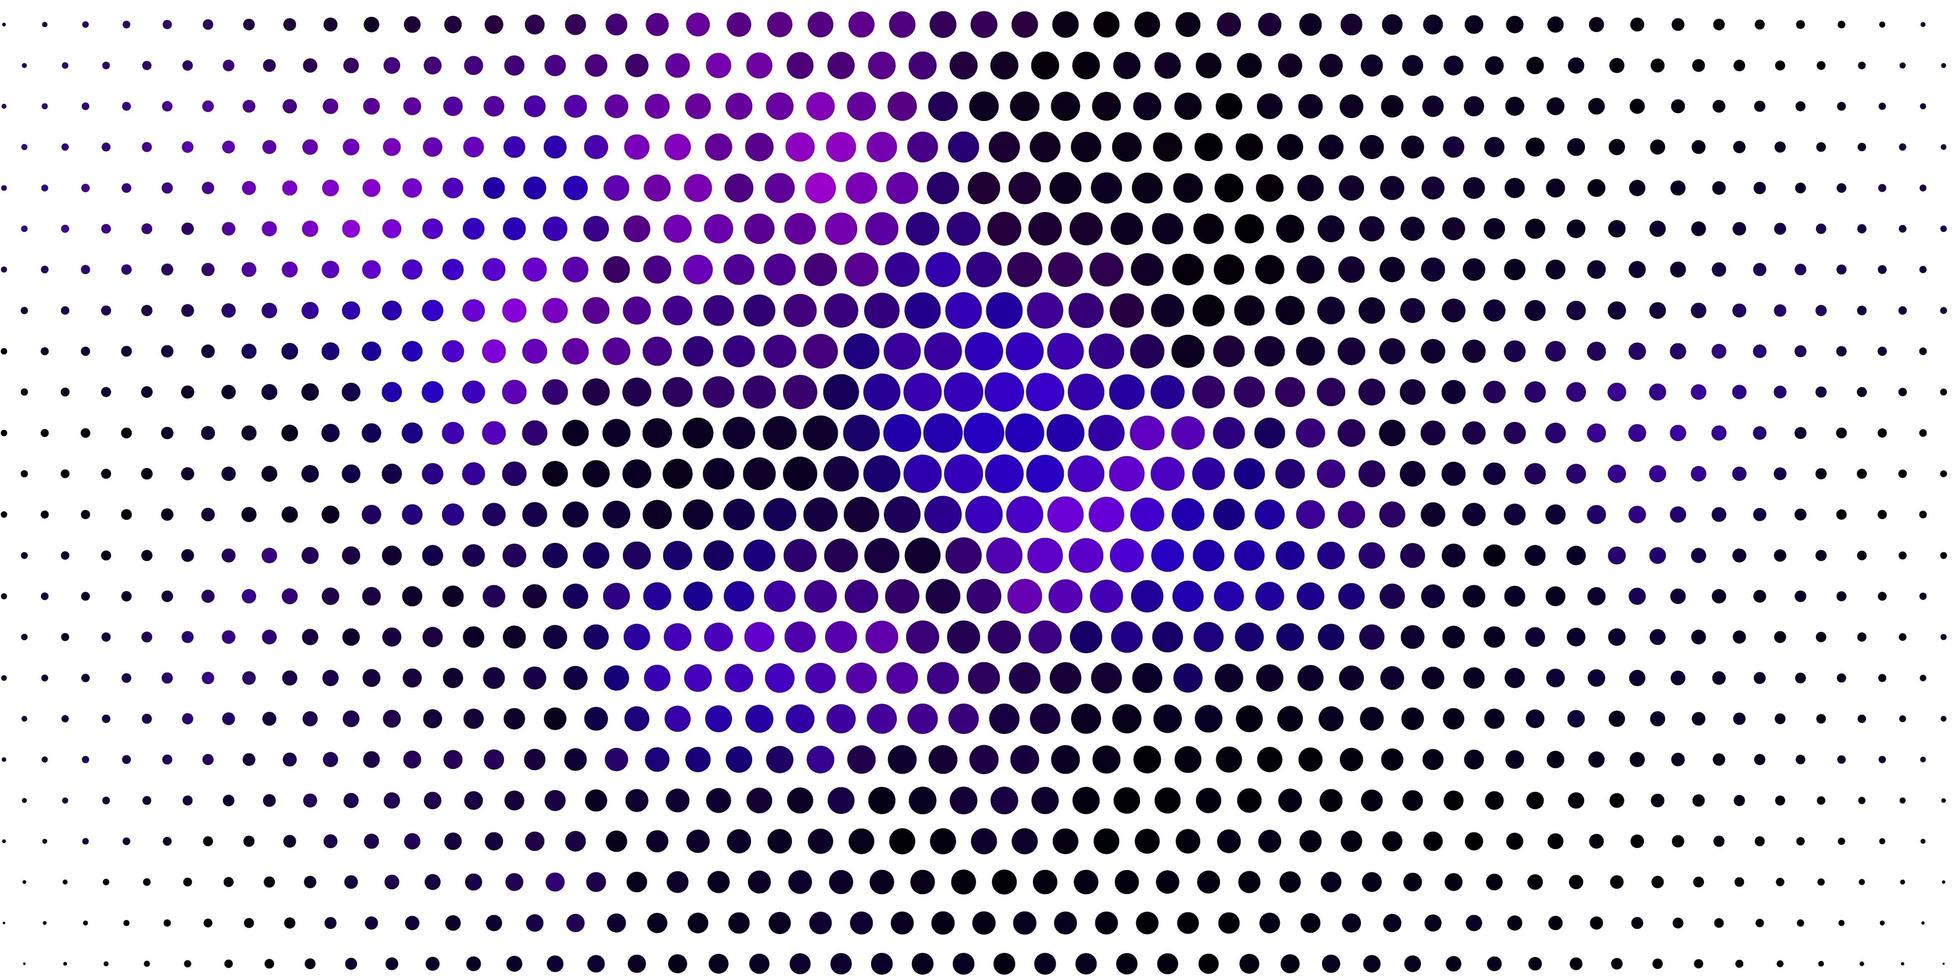 Purple layout with circle shapes. vector